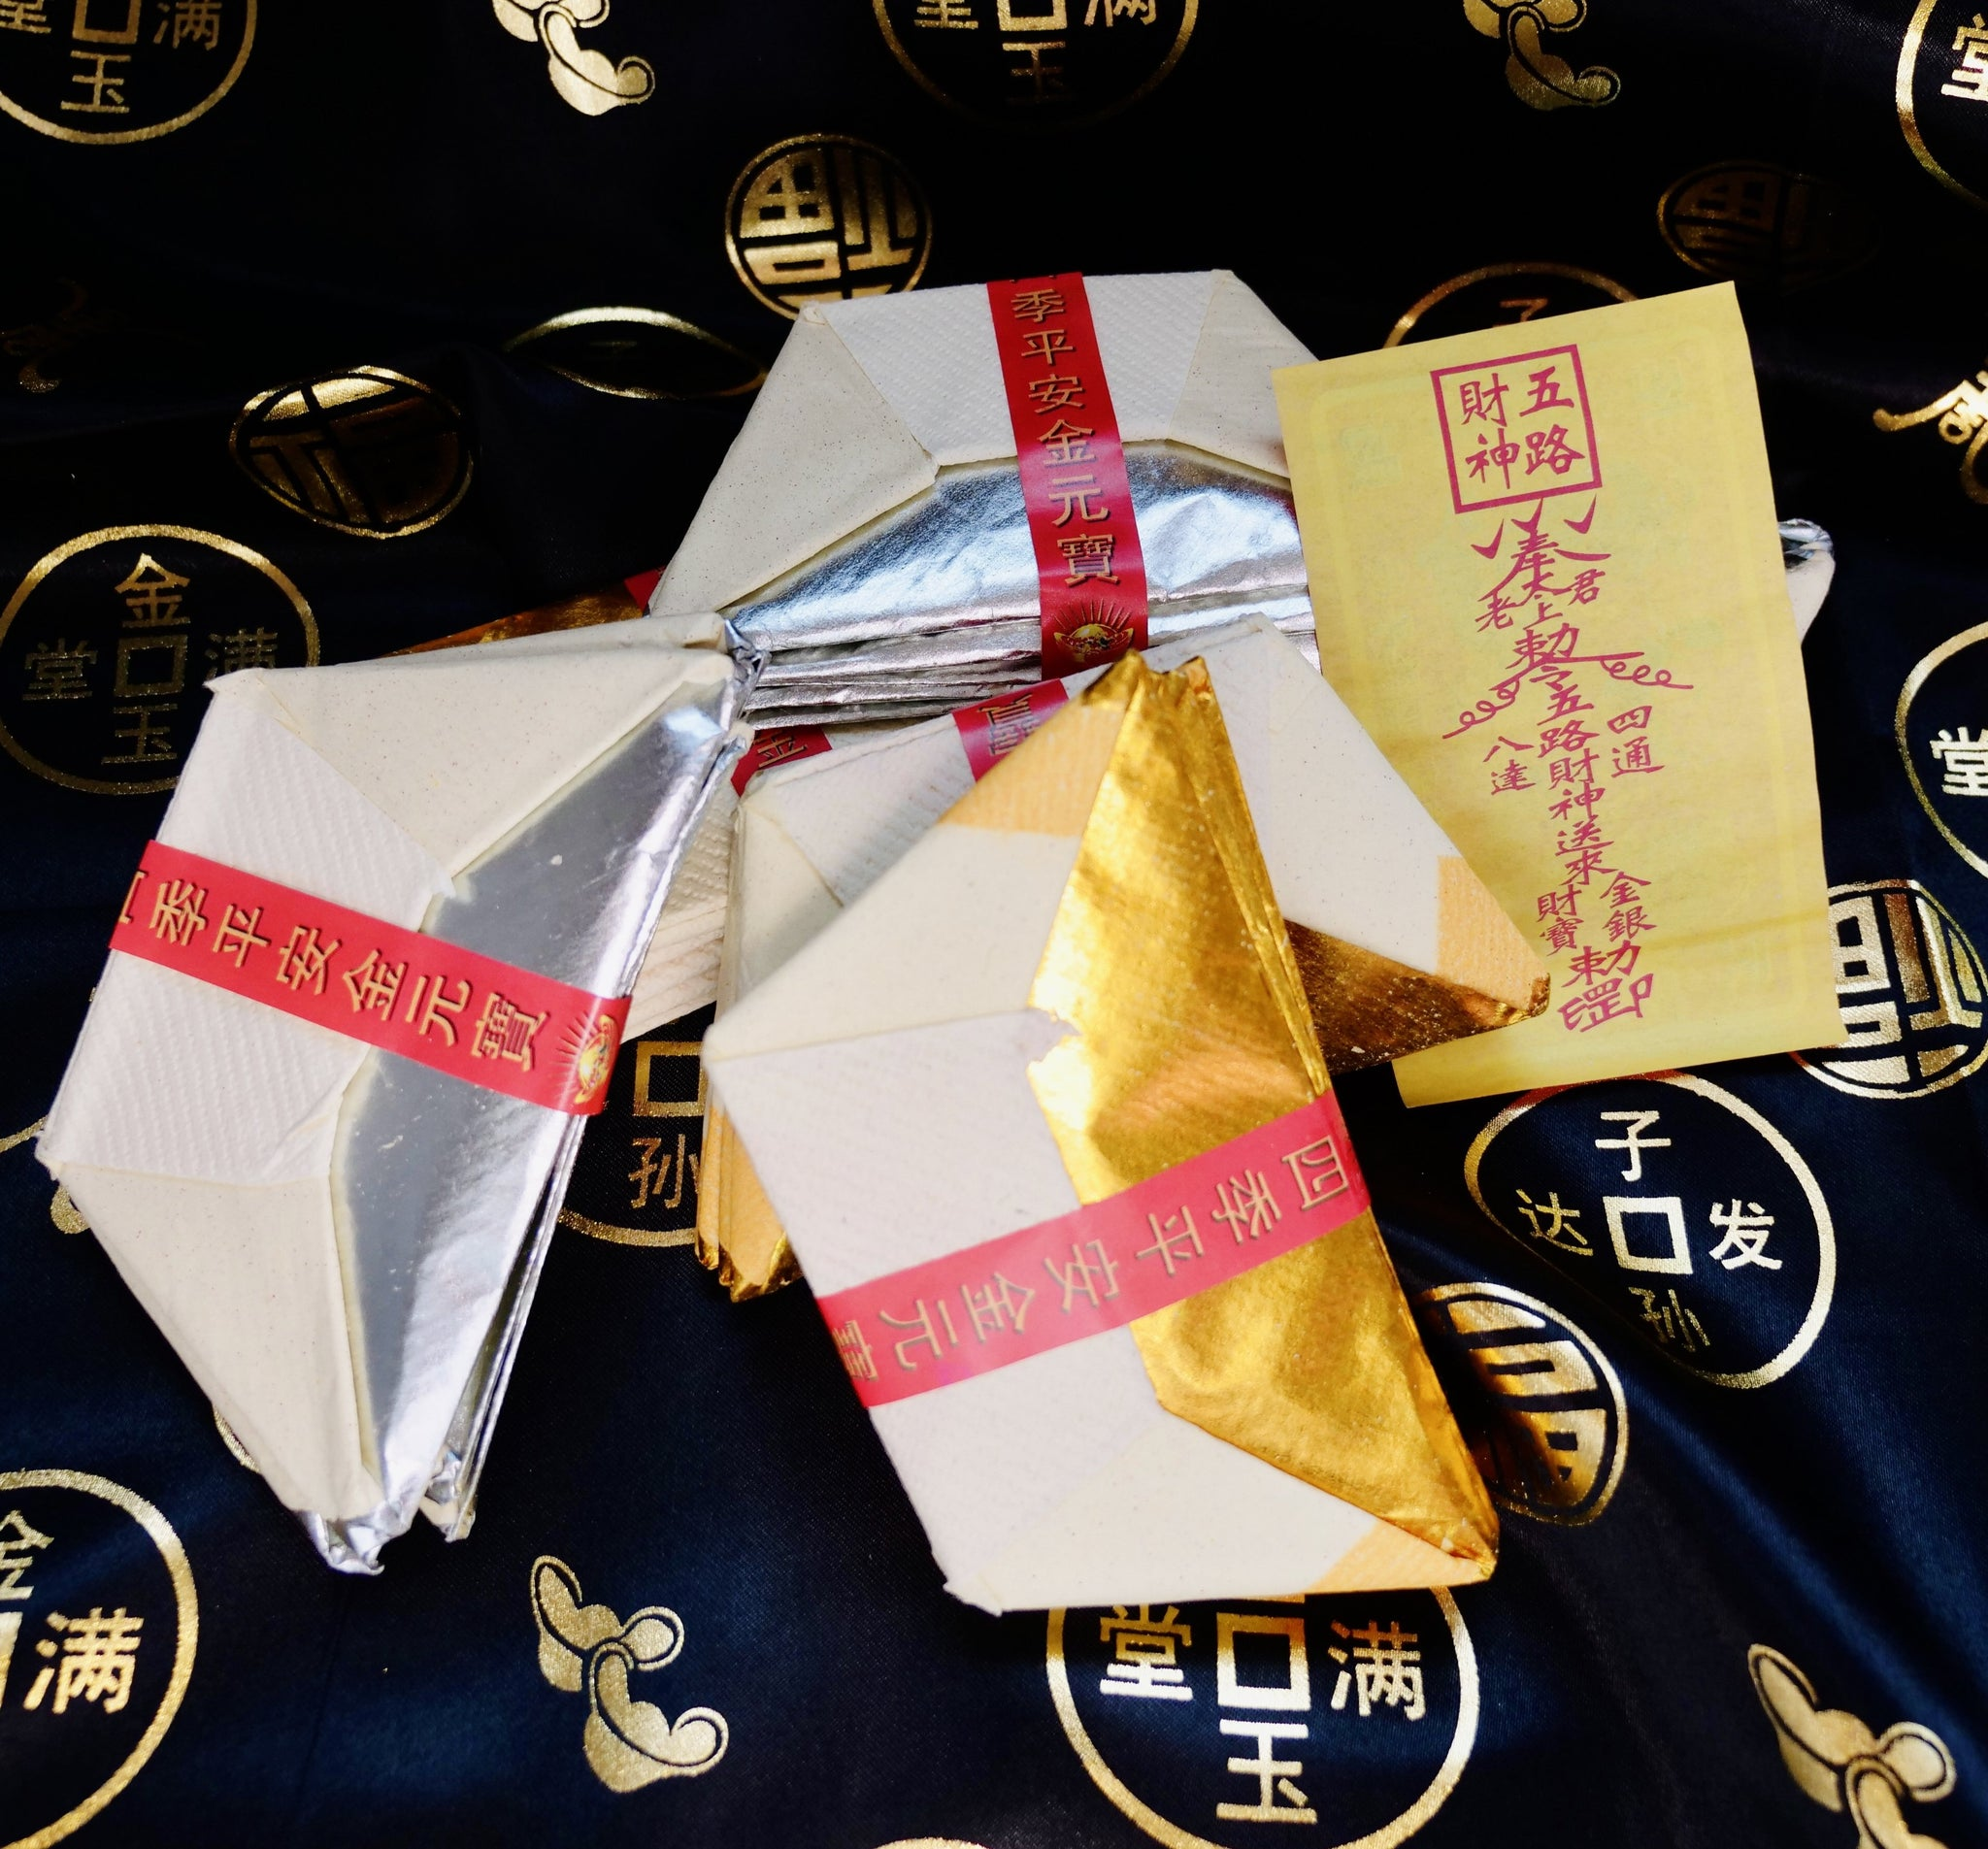 Folded Gold & Silver Ingots (金元寶)